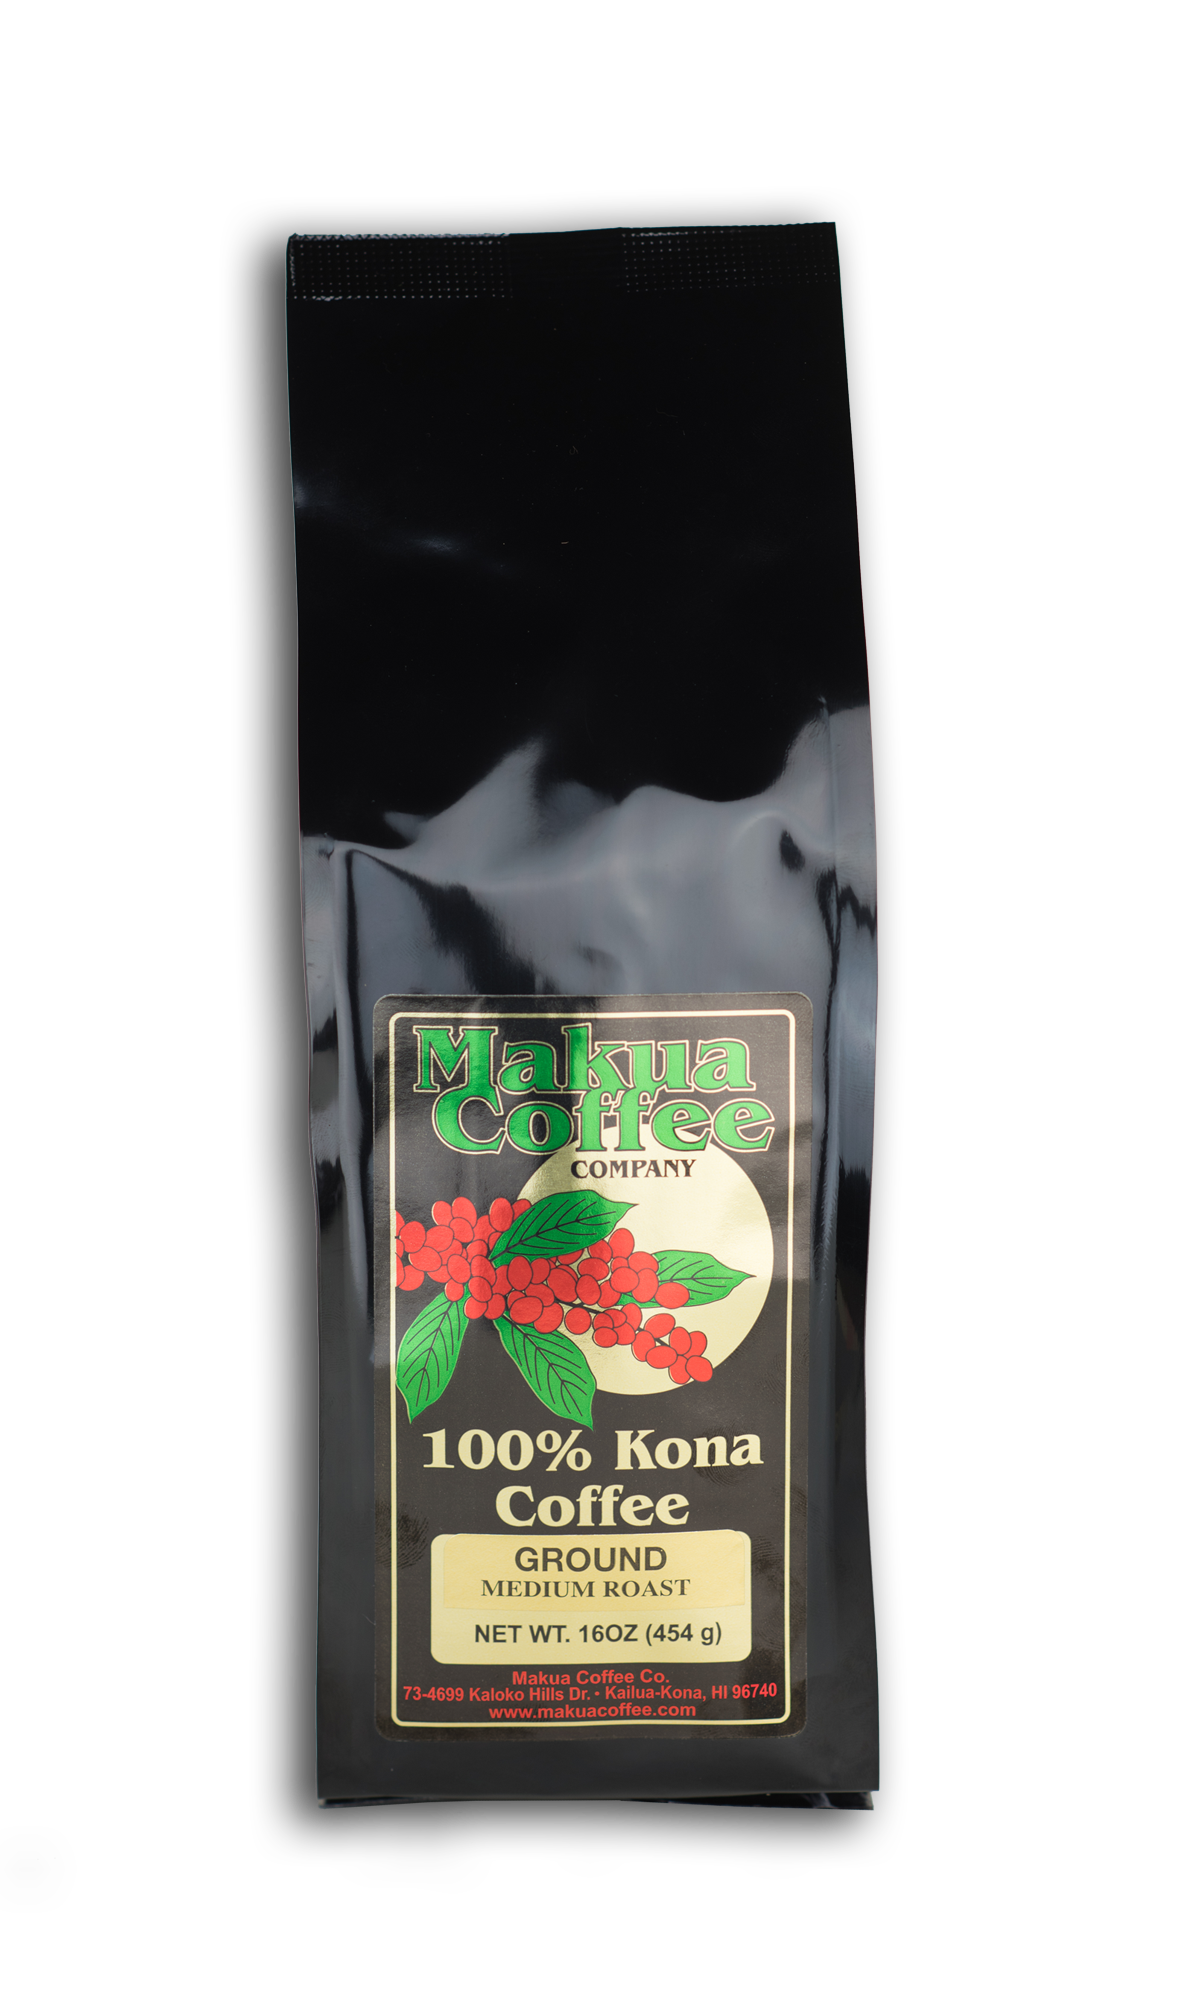 Makua Coffee Company 100% Kona Coffee Medium Roast Ground Coffee16 oz bag